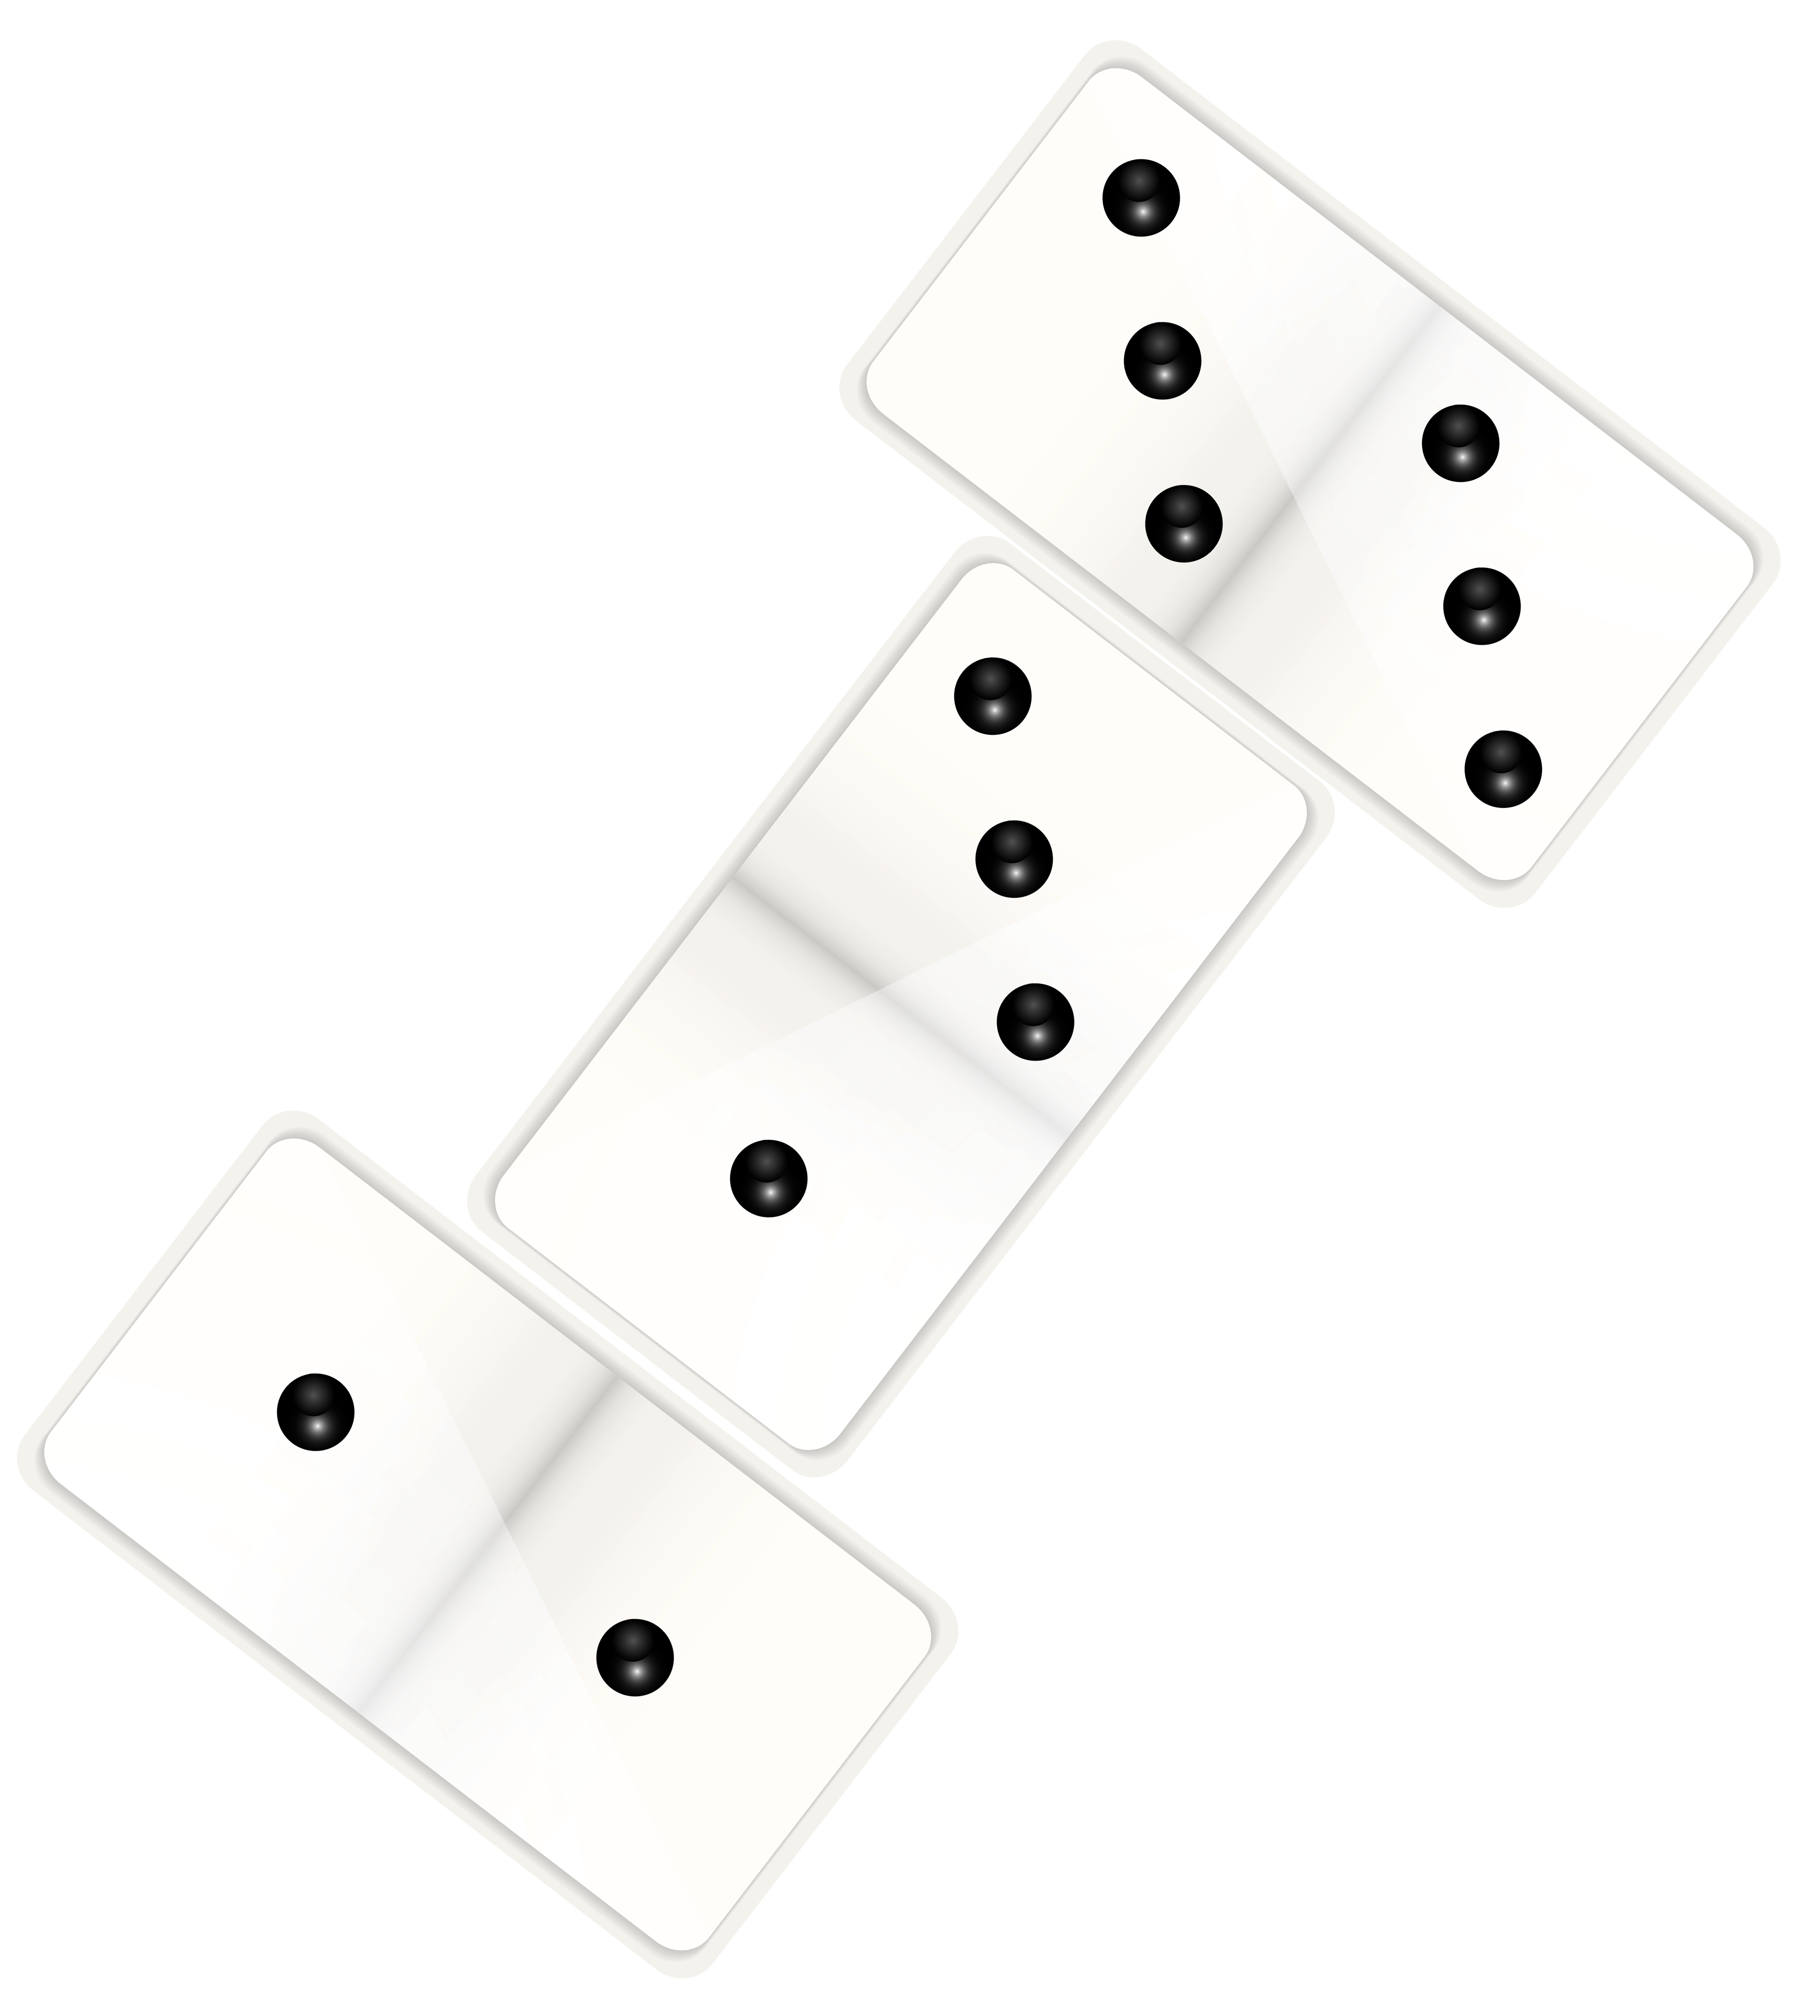 Dice clipart domino. Dominoes pieces png best